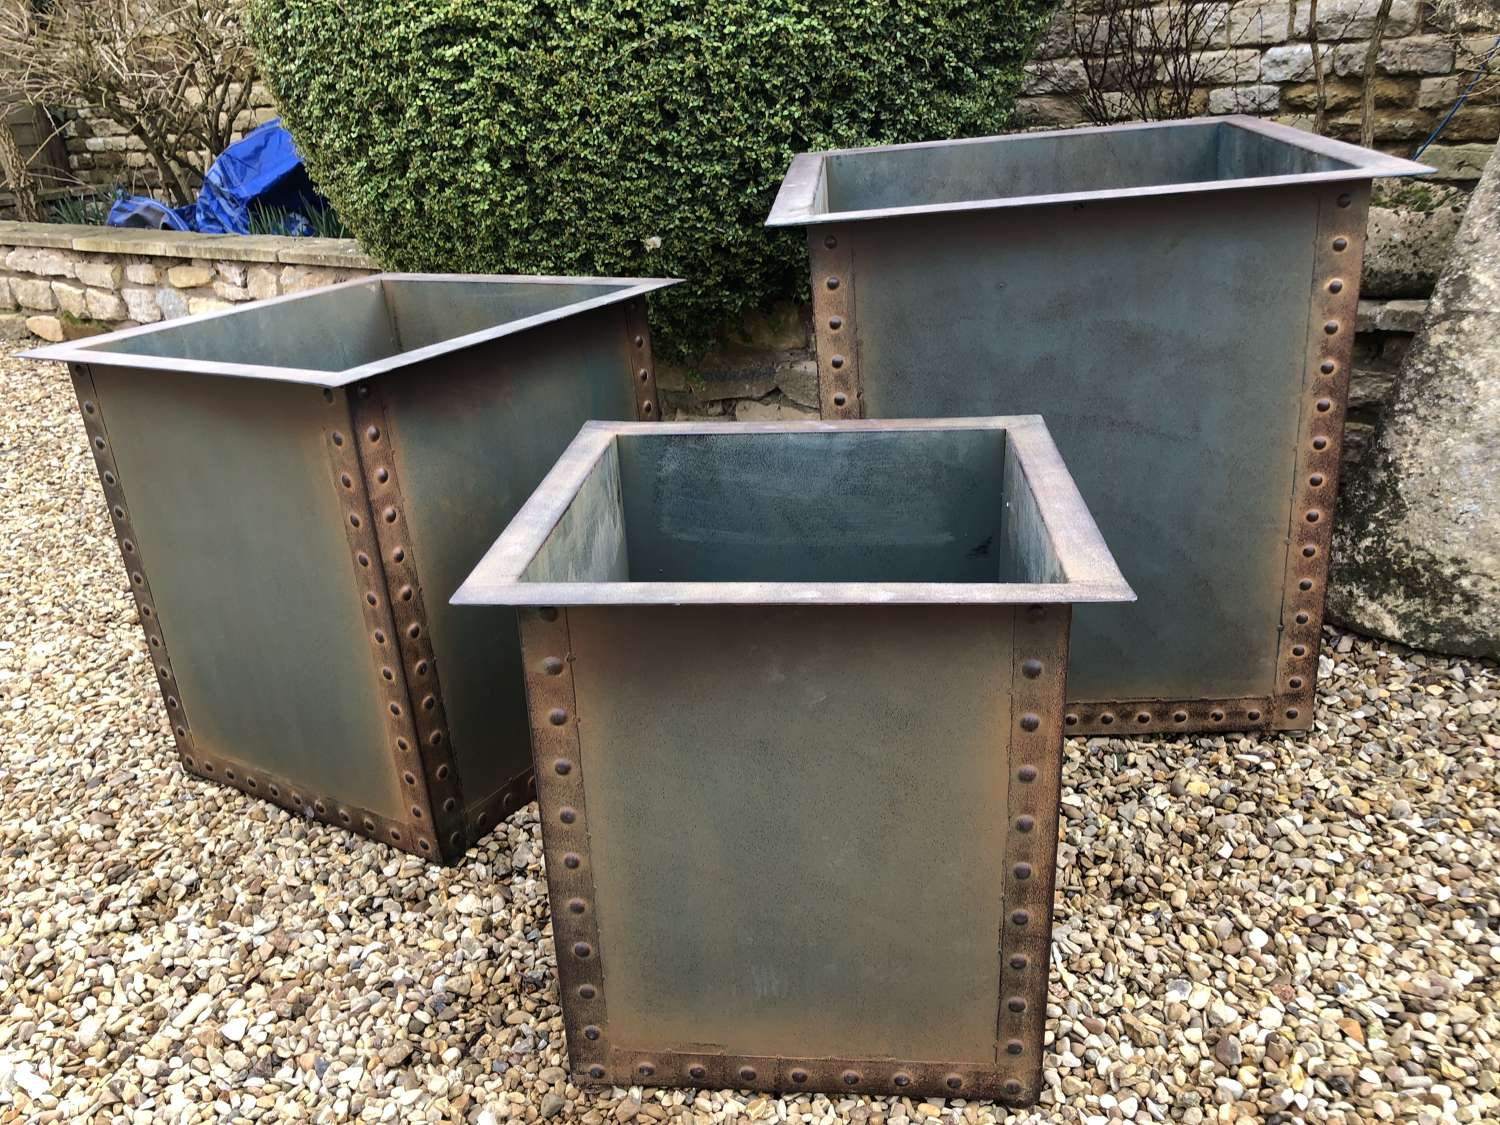 Set of Three Square Iron Riveted Planters - Iron Tubs x 3 Copper Blue